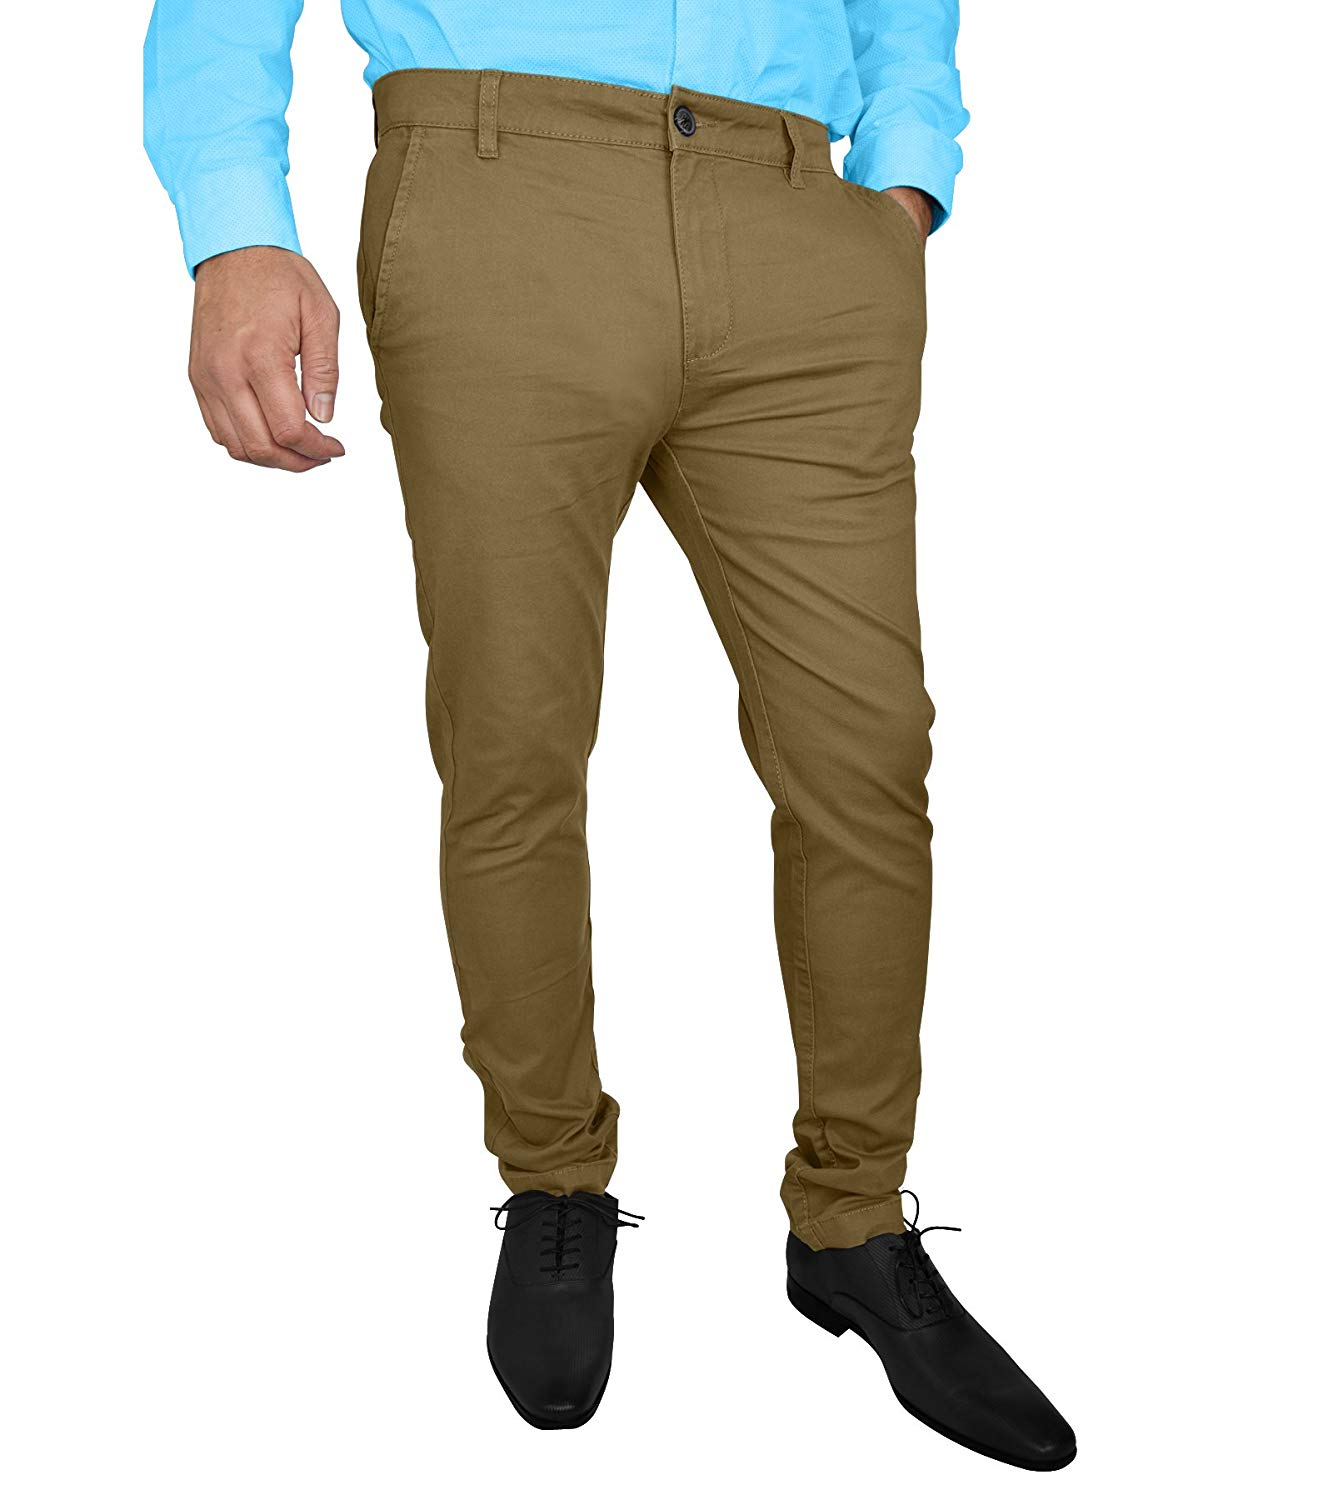 045b8ea3ae Get Quotations · westAce Mens Stretch Skinny Slim Fit Chino Pants Flat  Front Casual Super Spandex Trousers